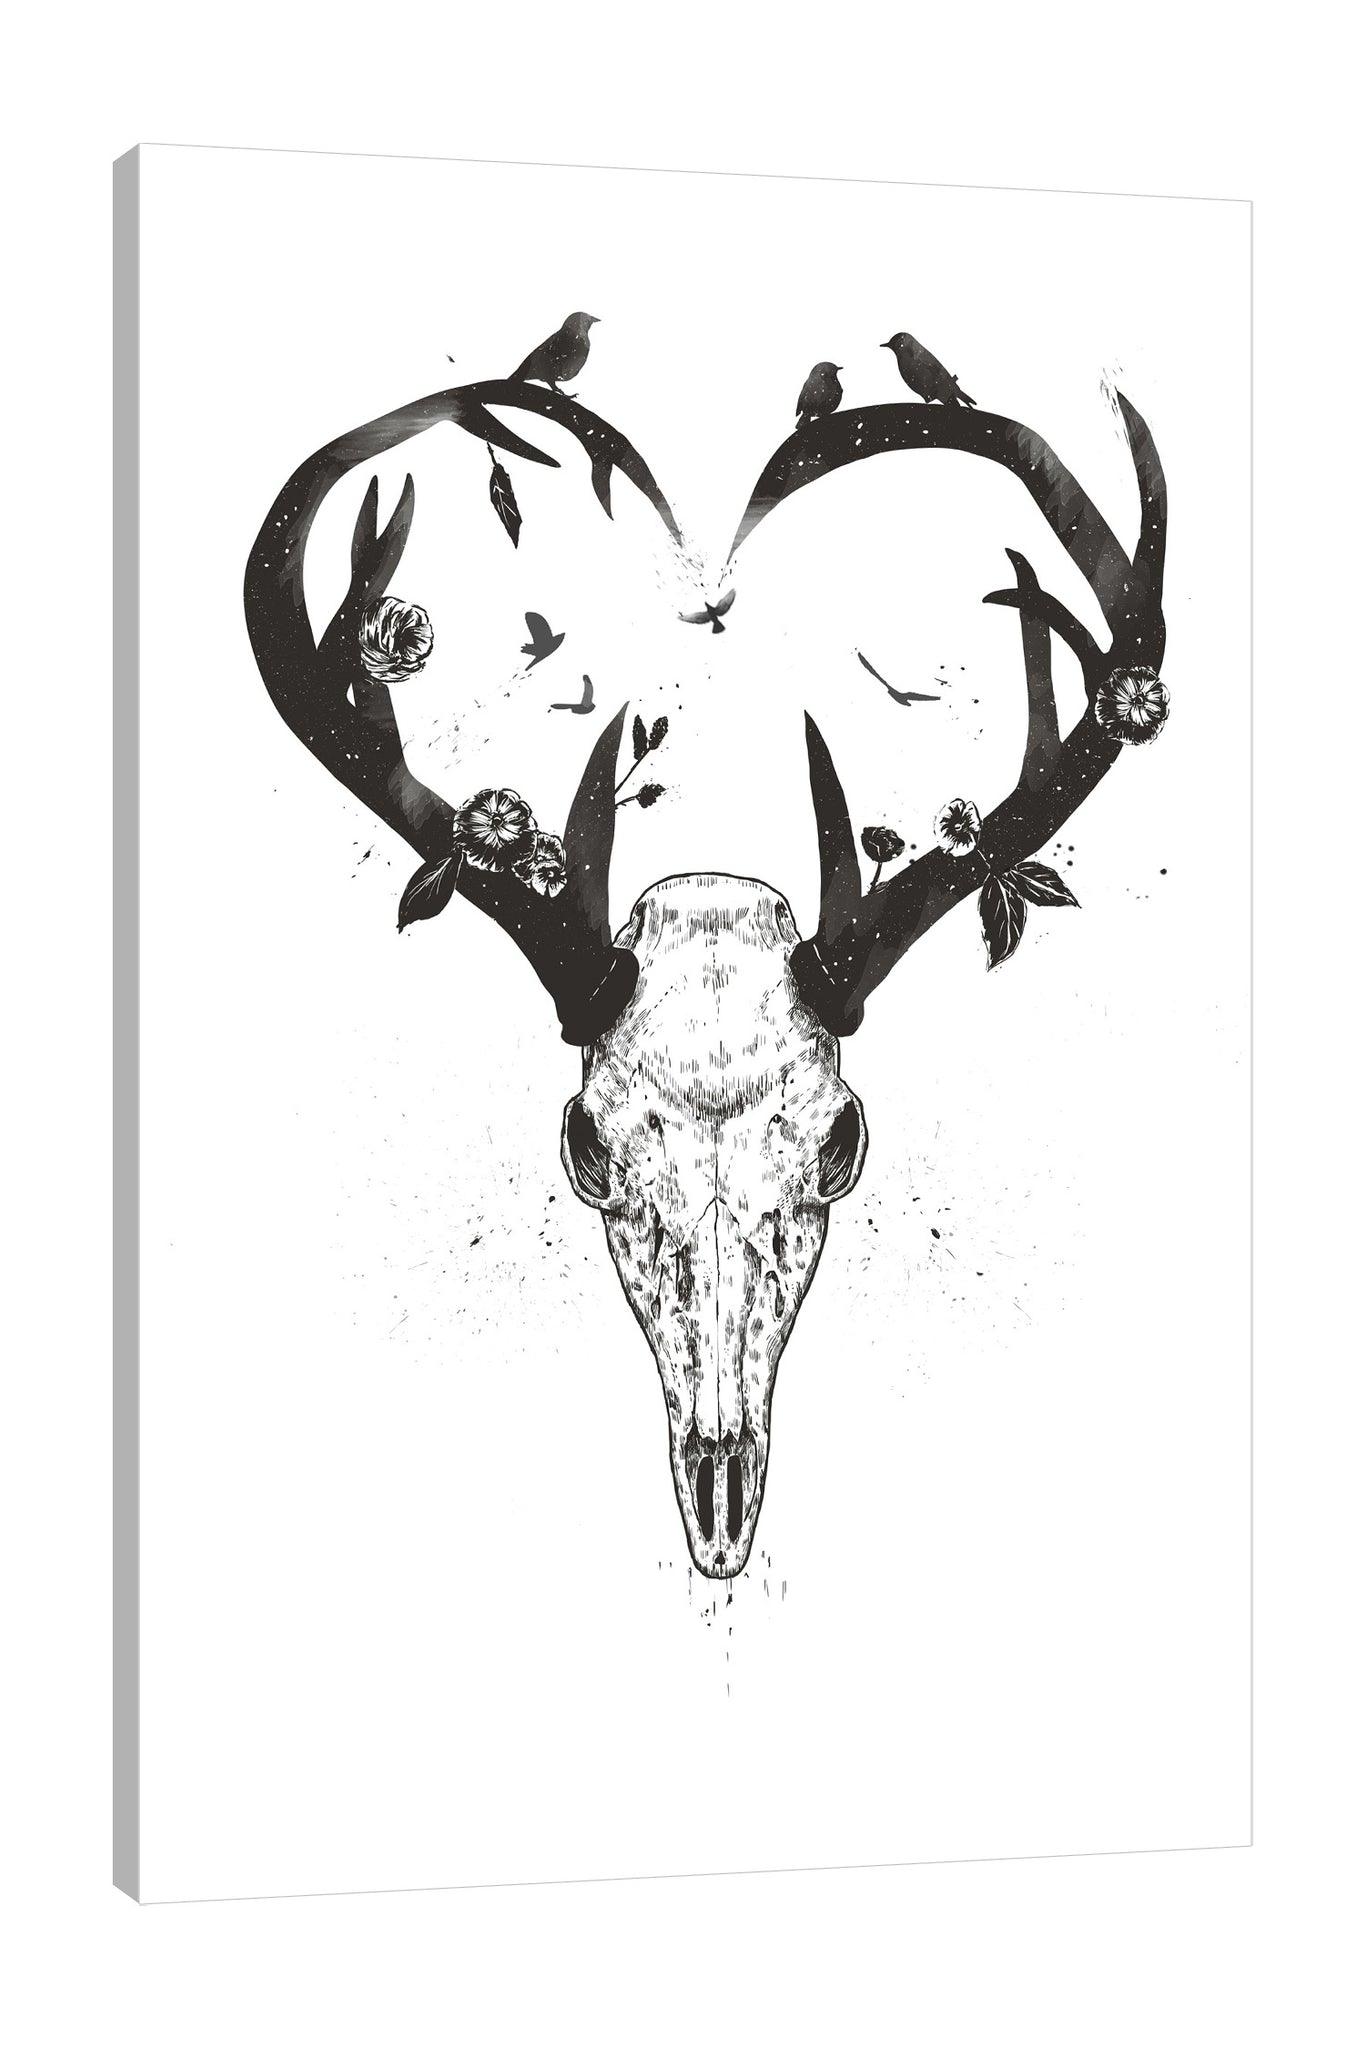 Balazs-Solti,Modern & Contemporary,Animals,Floral & Botanical,animals,animal,skull,skulls,horns,horn,florals,floral,flowers,flower,birds,bird,heart,hearts,black and white,Mist Gray,Tan Orange,Yellow,Tan White